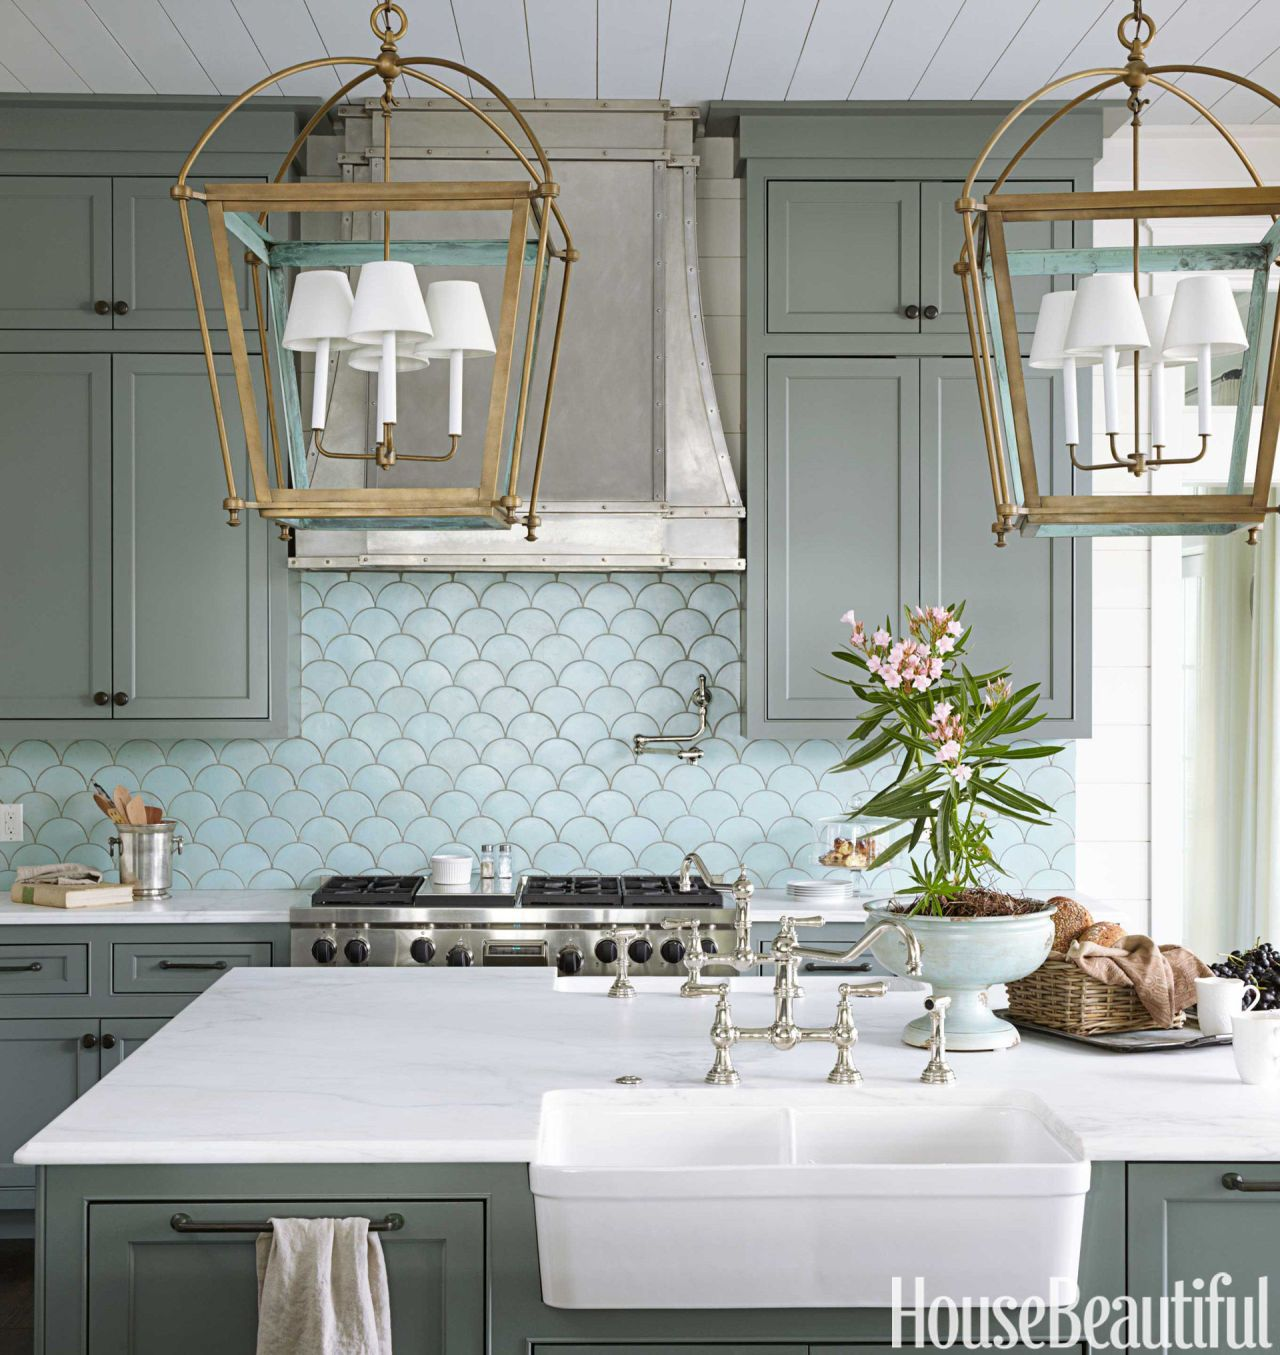 7 Smart Ways to Make Your Kitchen Look Expensive | Farm sink, Gray ...